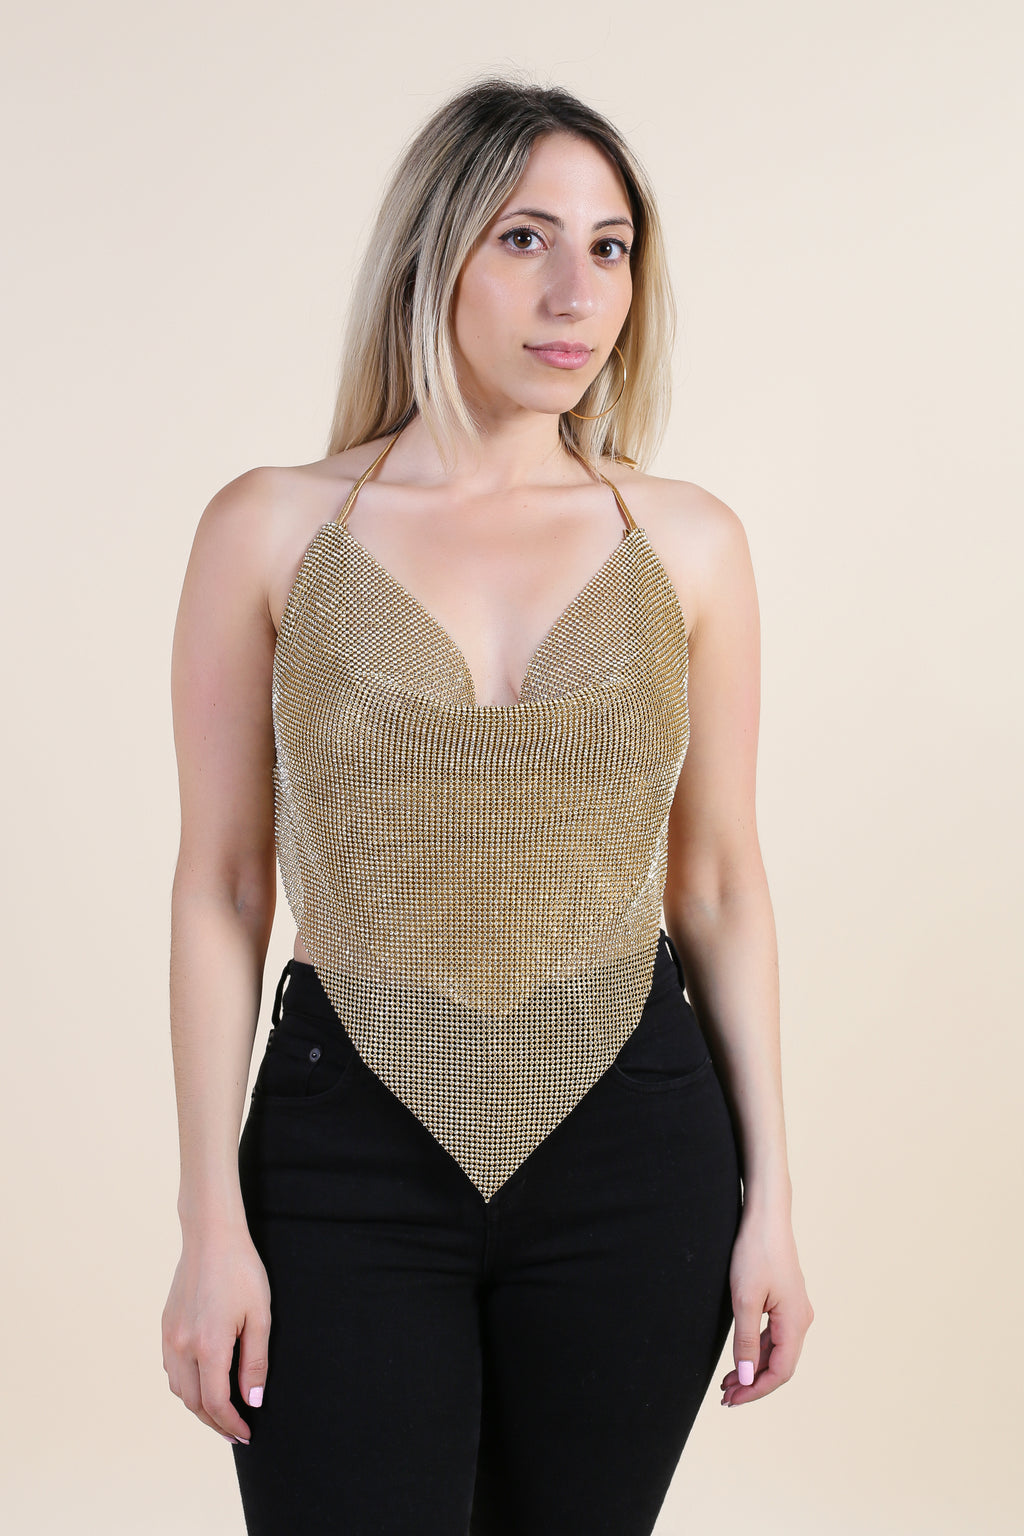 Backless Halterneck Rhinestone Top